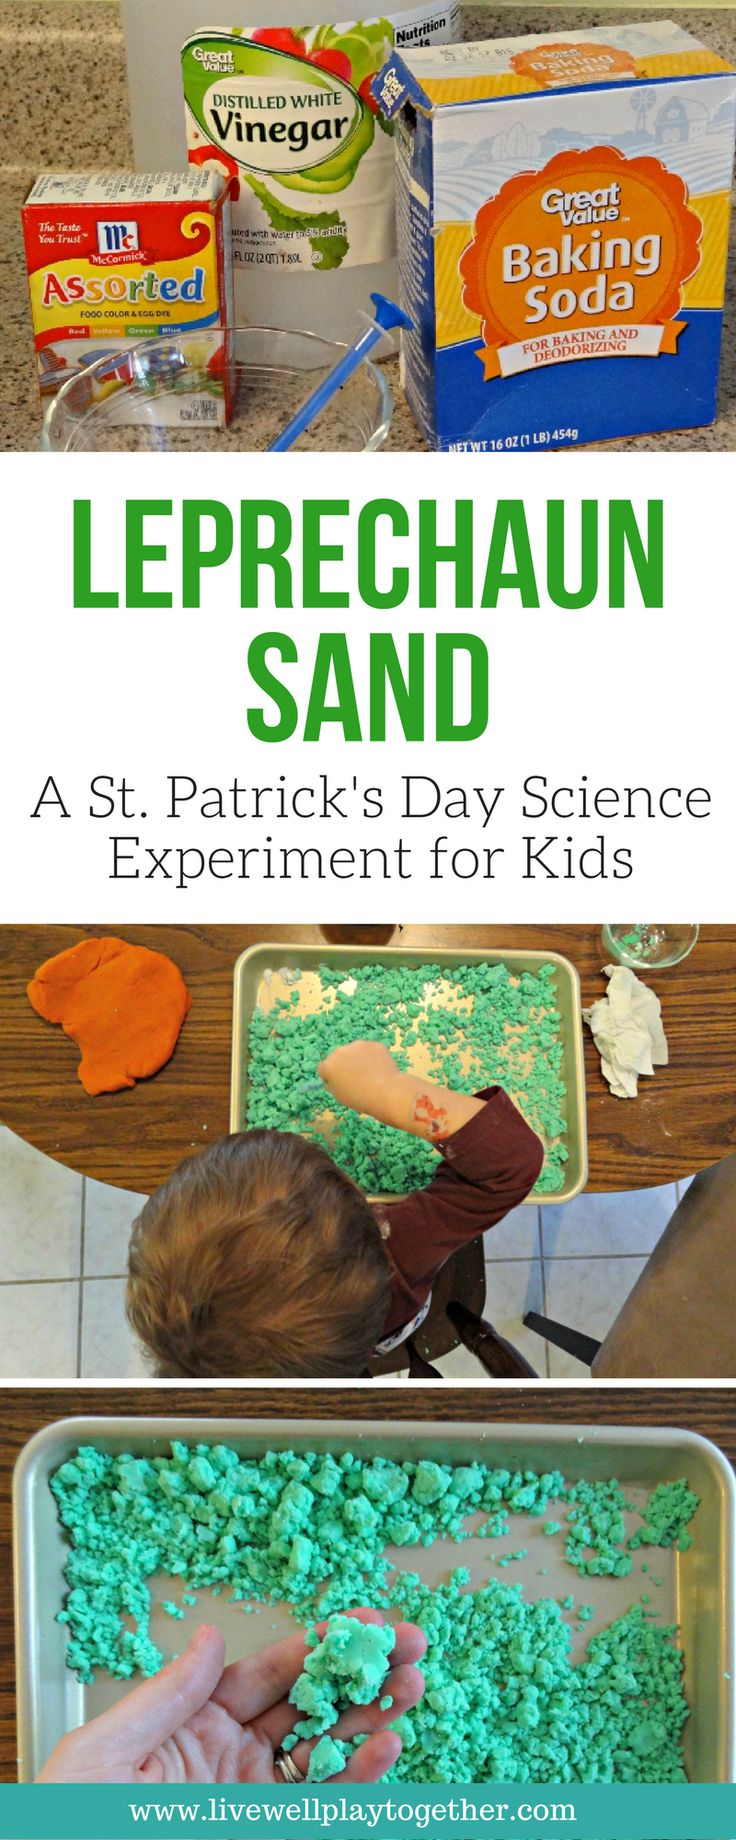 Leprechaun Sand: A St. Patrick's Day Science Experiment for Kids